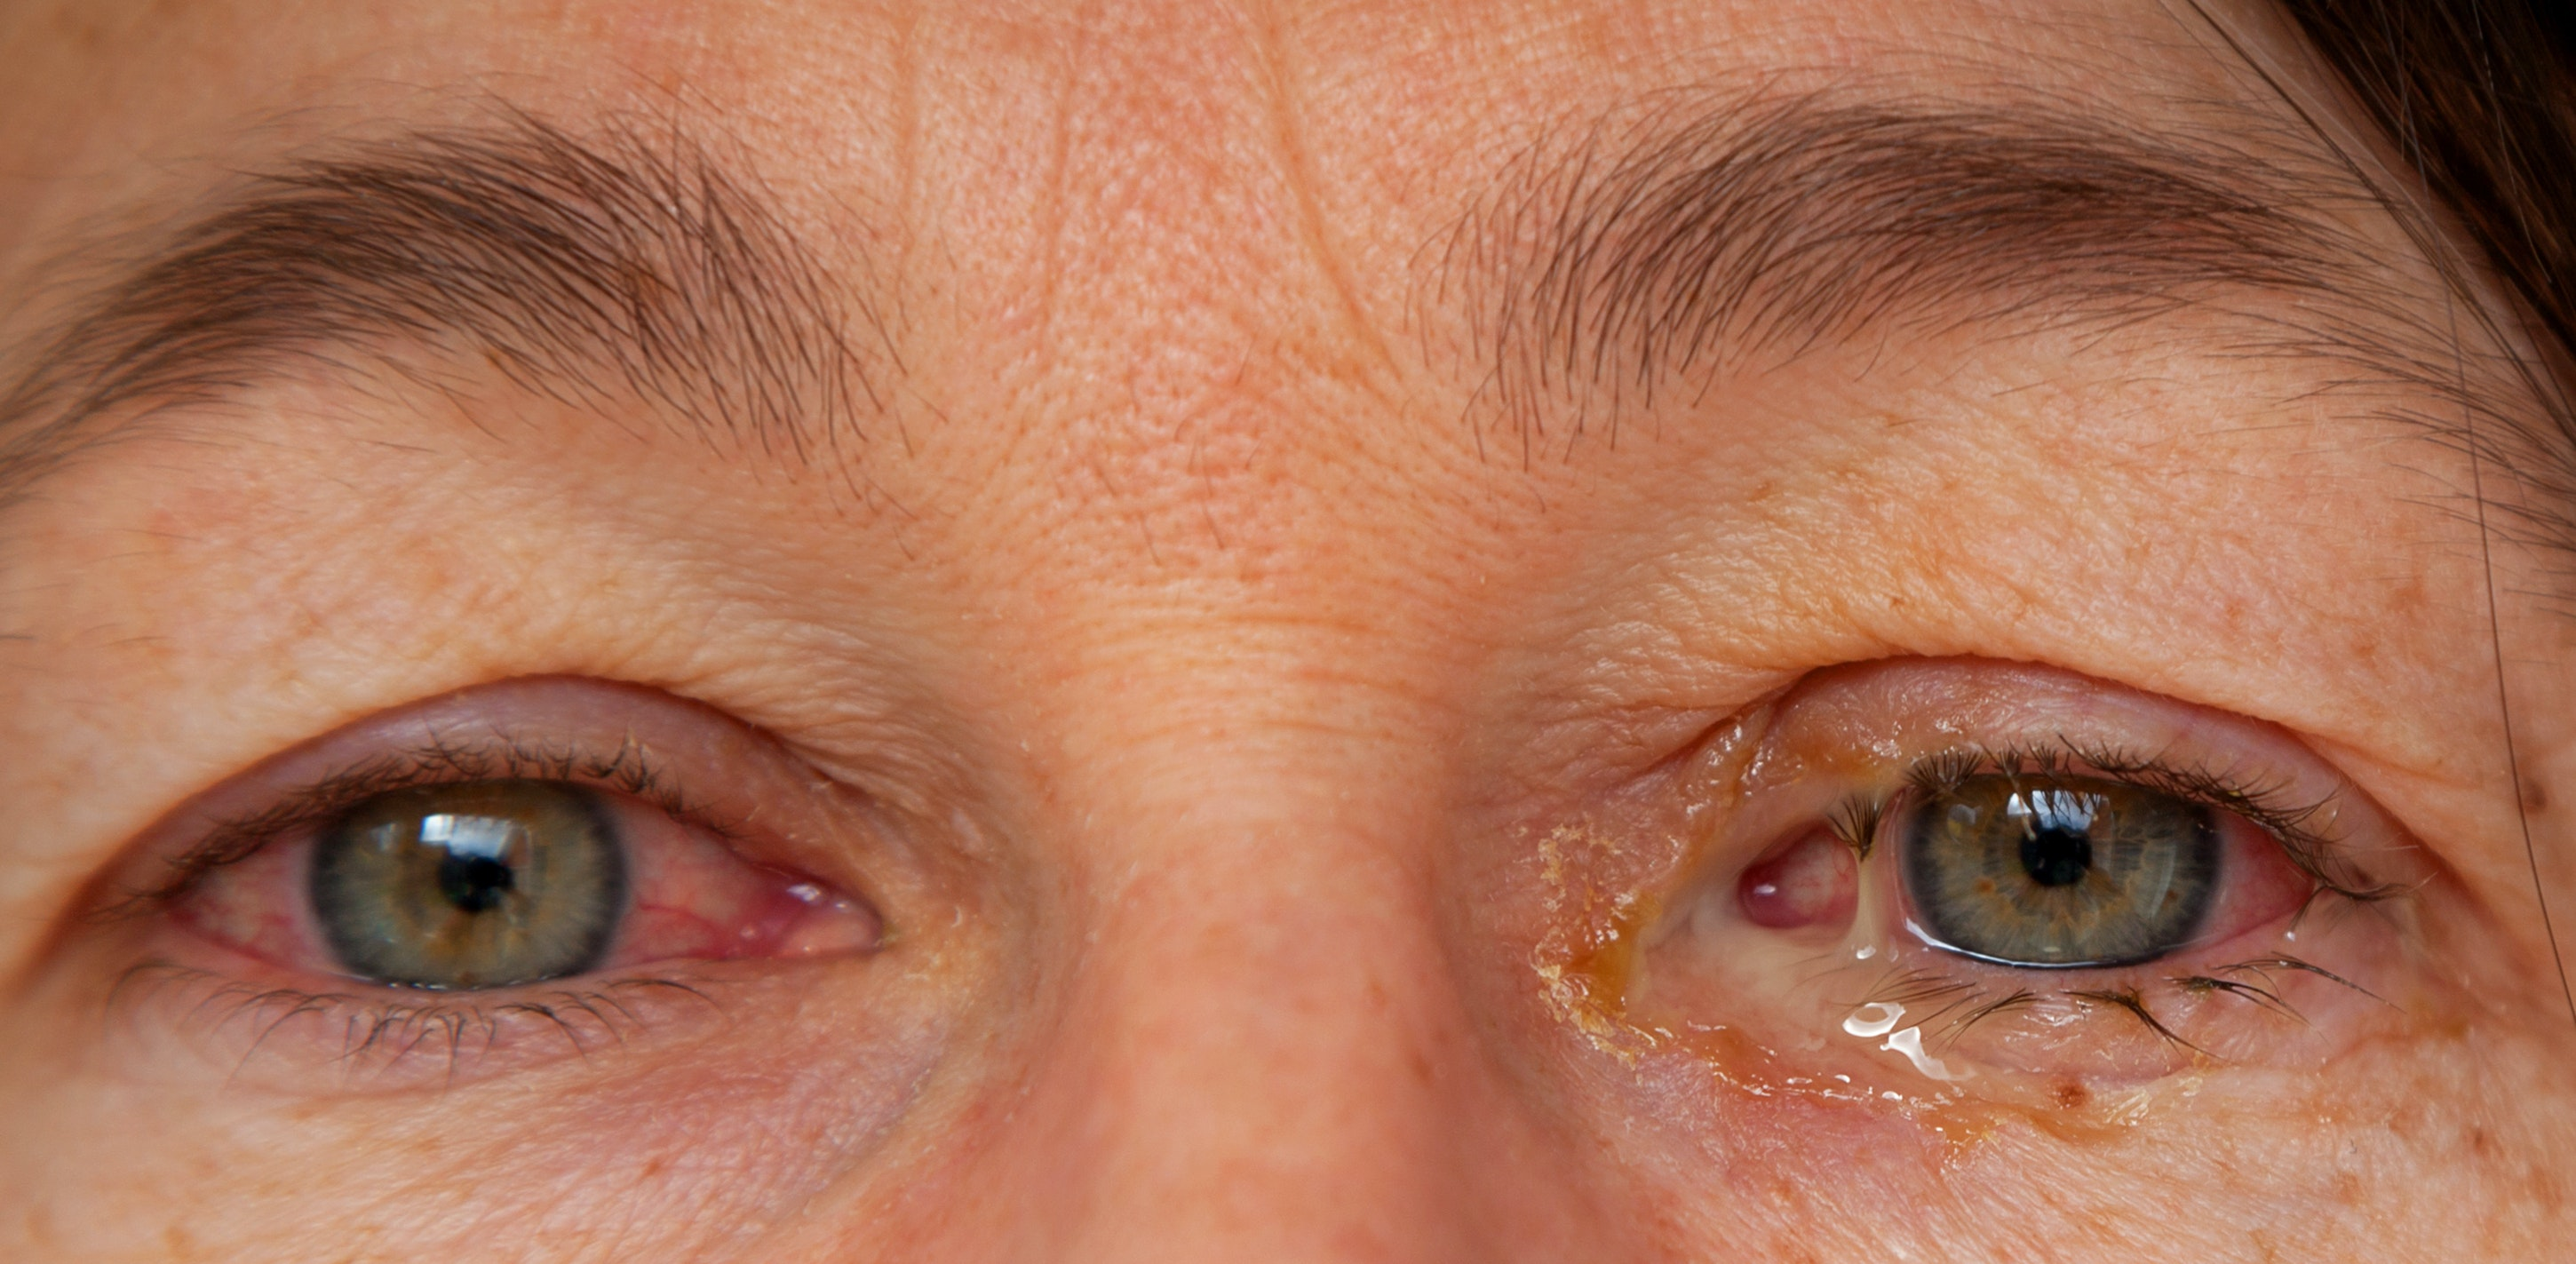 An image depicting a person suffering from eye discharge symptoms